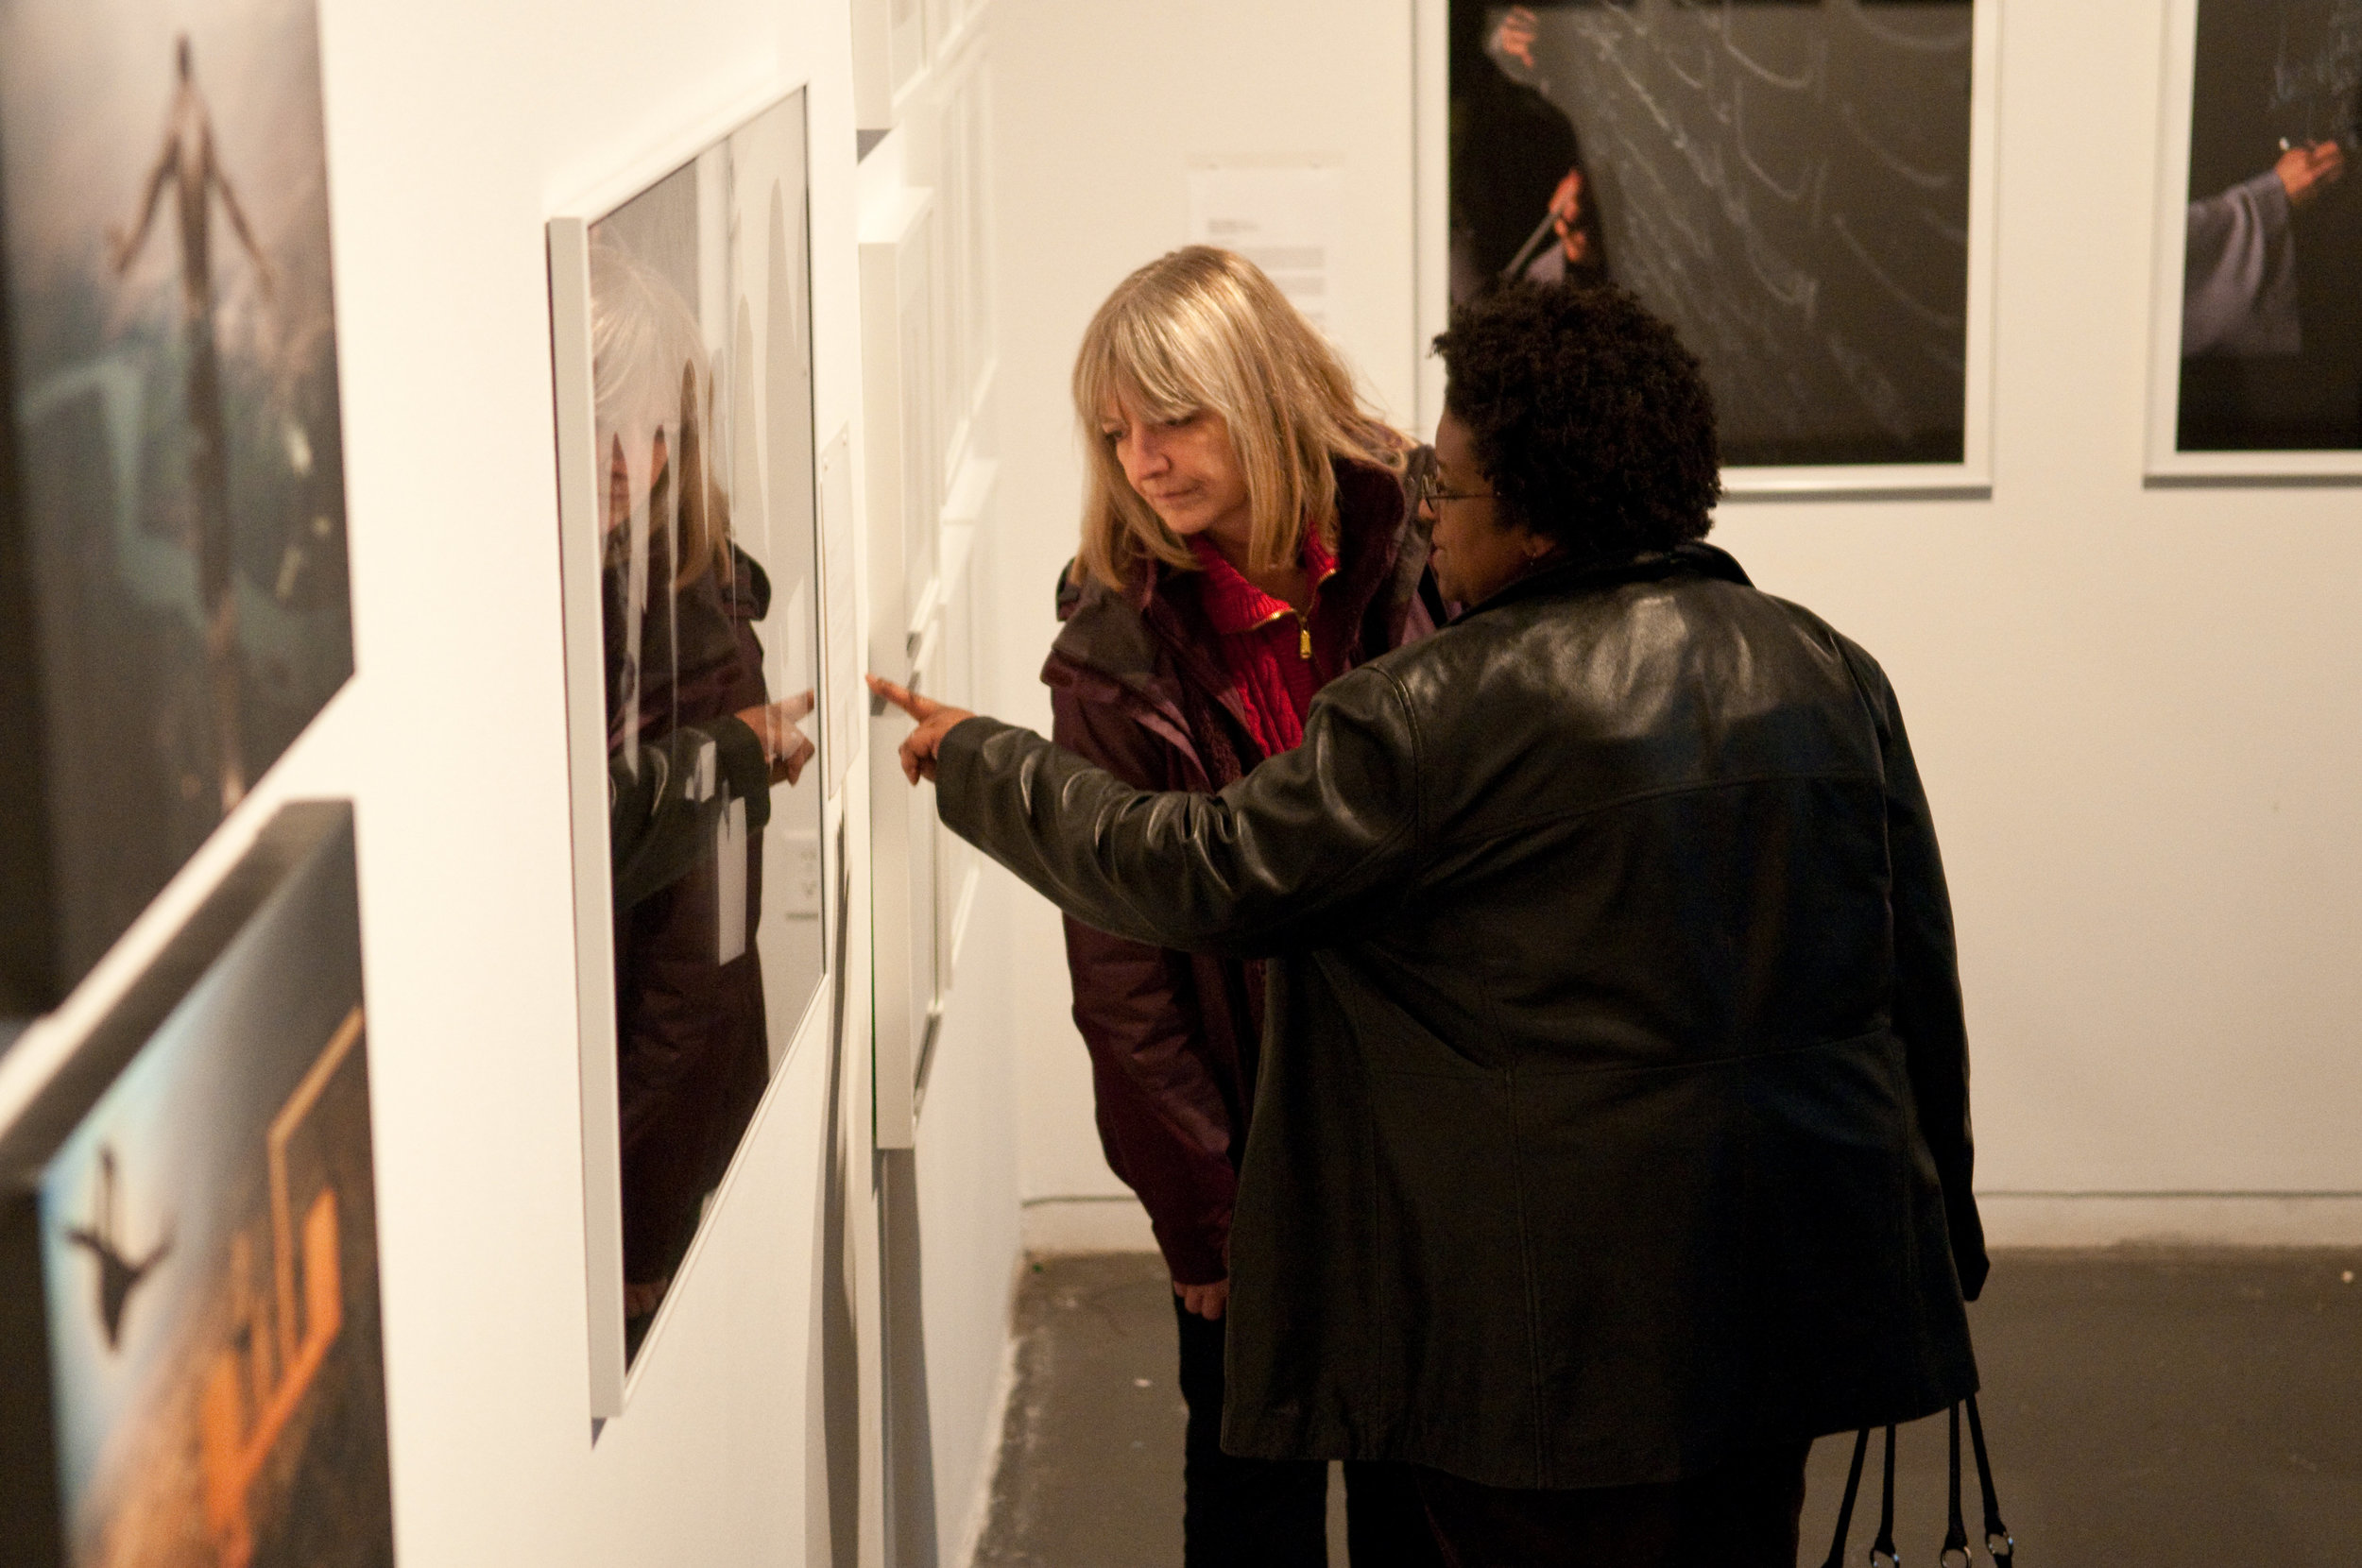 Two women viewing the Not about bombs artwork display